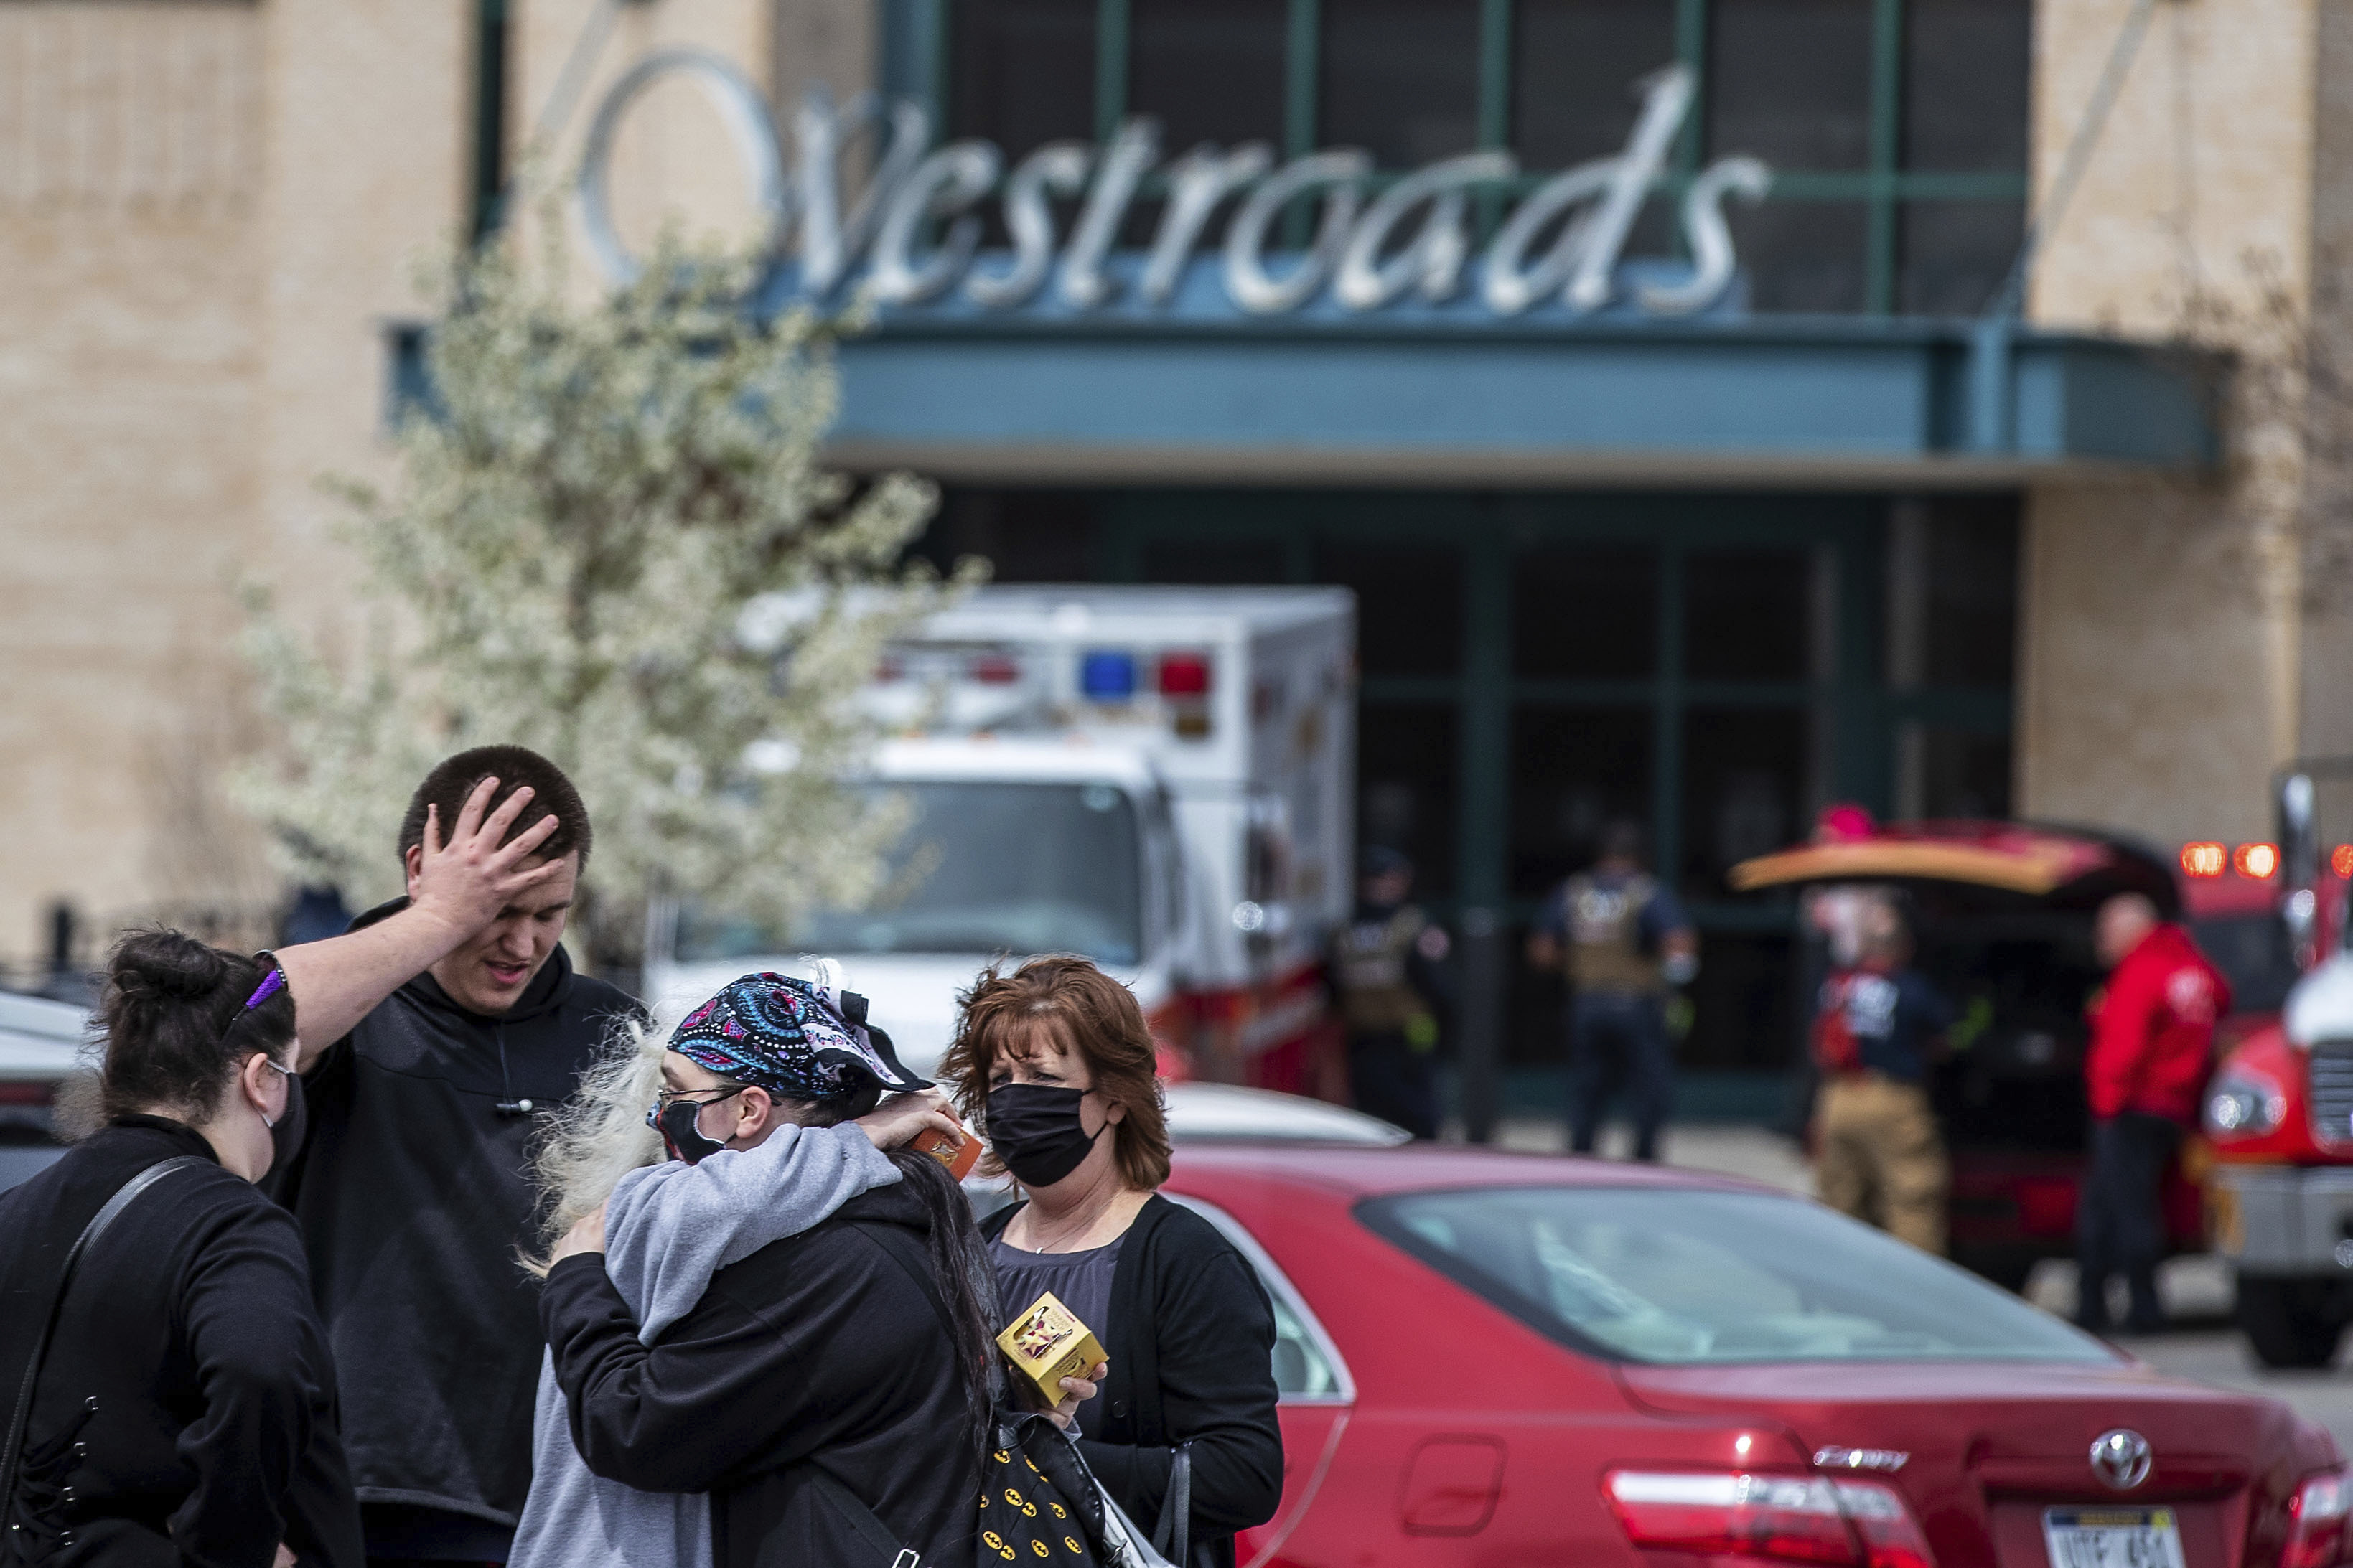 People hug in the parking lot after a shooting at Westroads Mall in Omaha, Nebraska, on April 17, 2021.